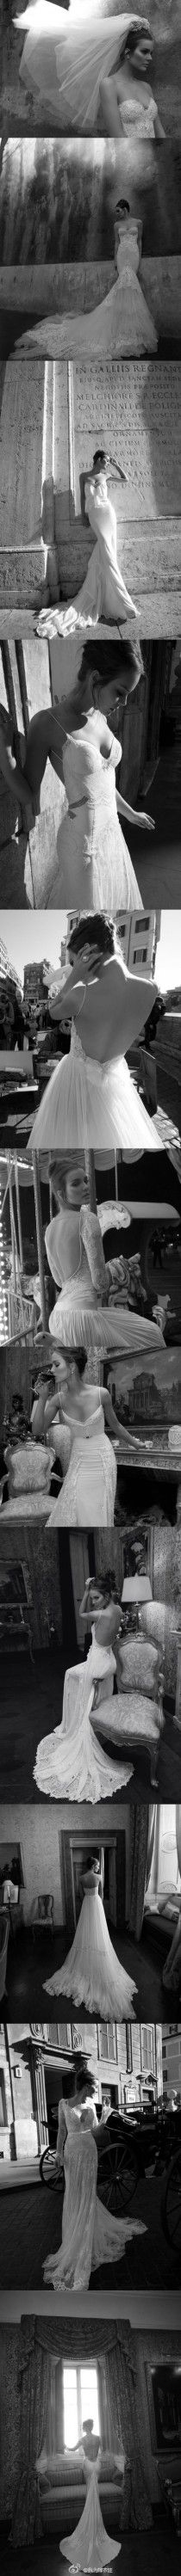 Dream Wedding Dresses ♥ Elegant Wedding Dresses ♥ Inbal Dror Haute Couture Collection | Ozel Tasarim Gelinlik Modelleri